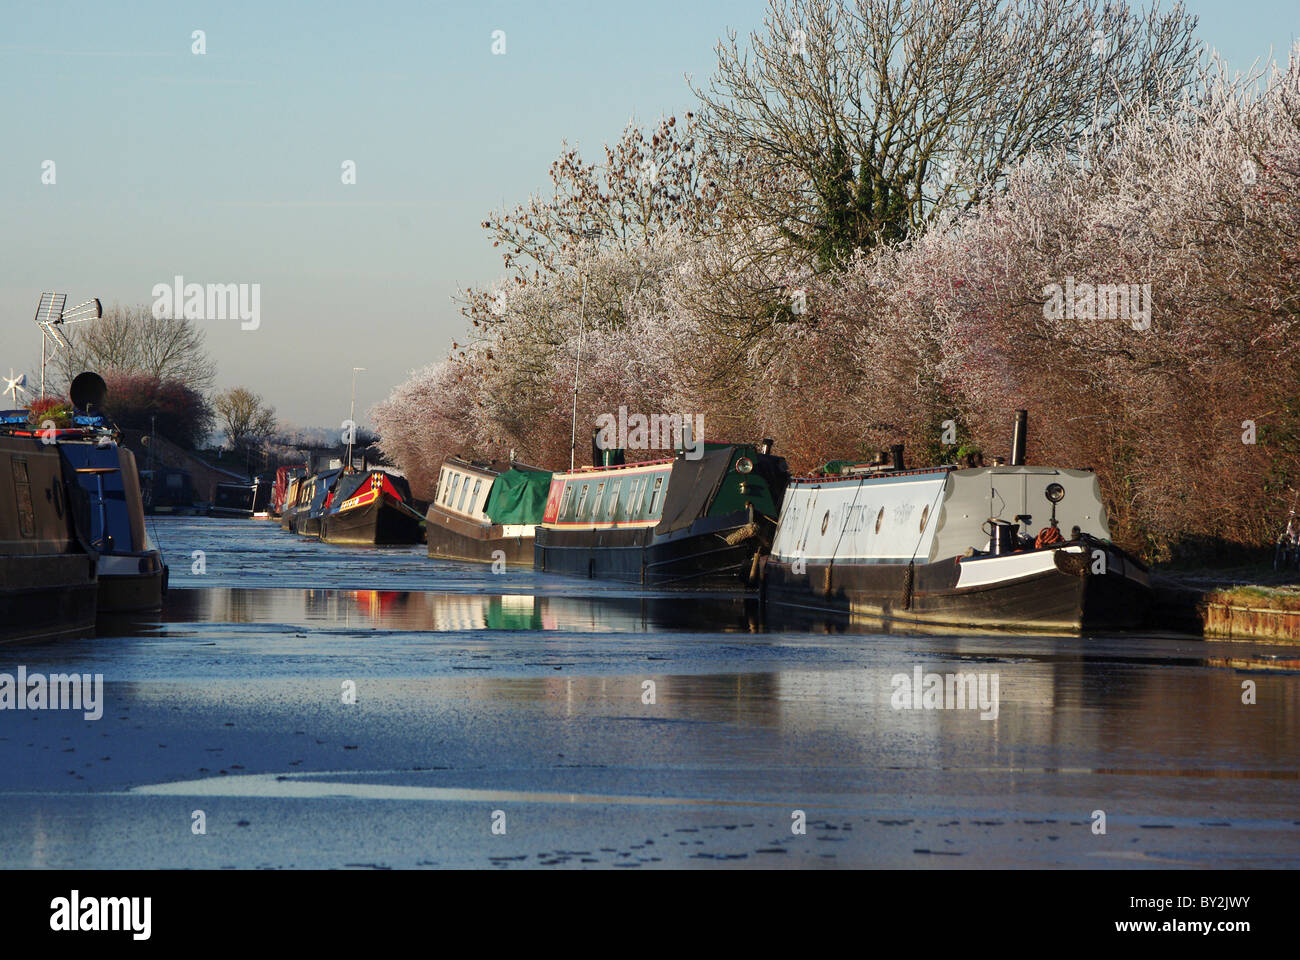 Narrowboats in the ice on The Grand Union Canal at Blisworth Arm, Northamptonshire, UK - Stock Image